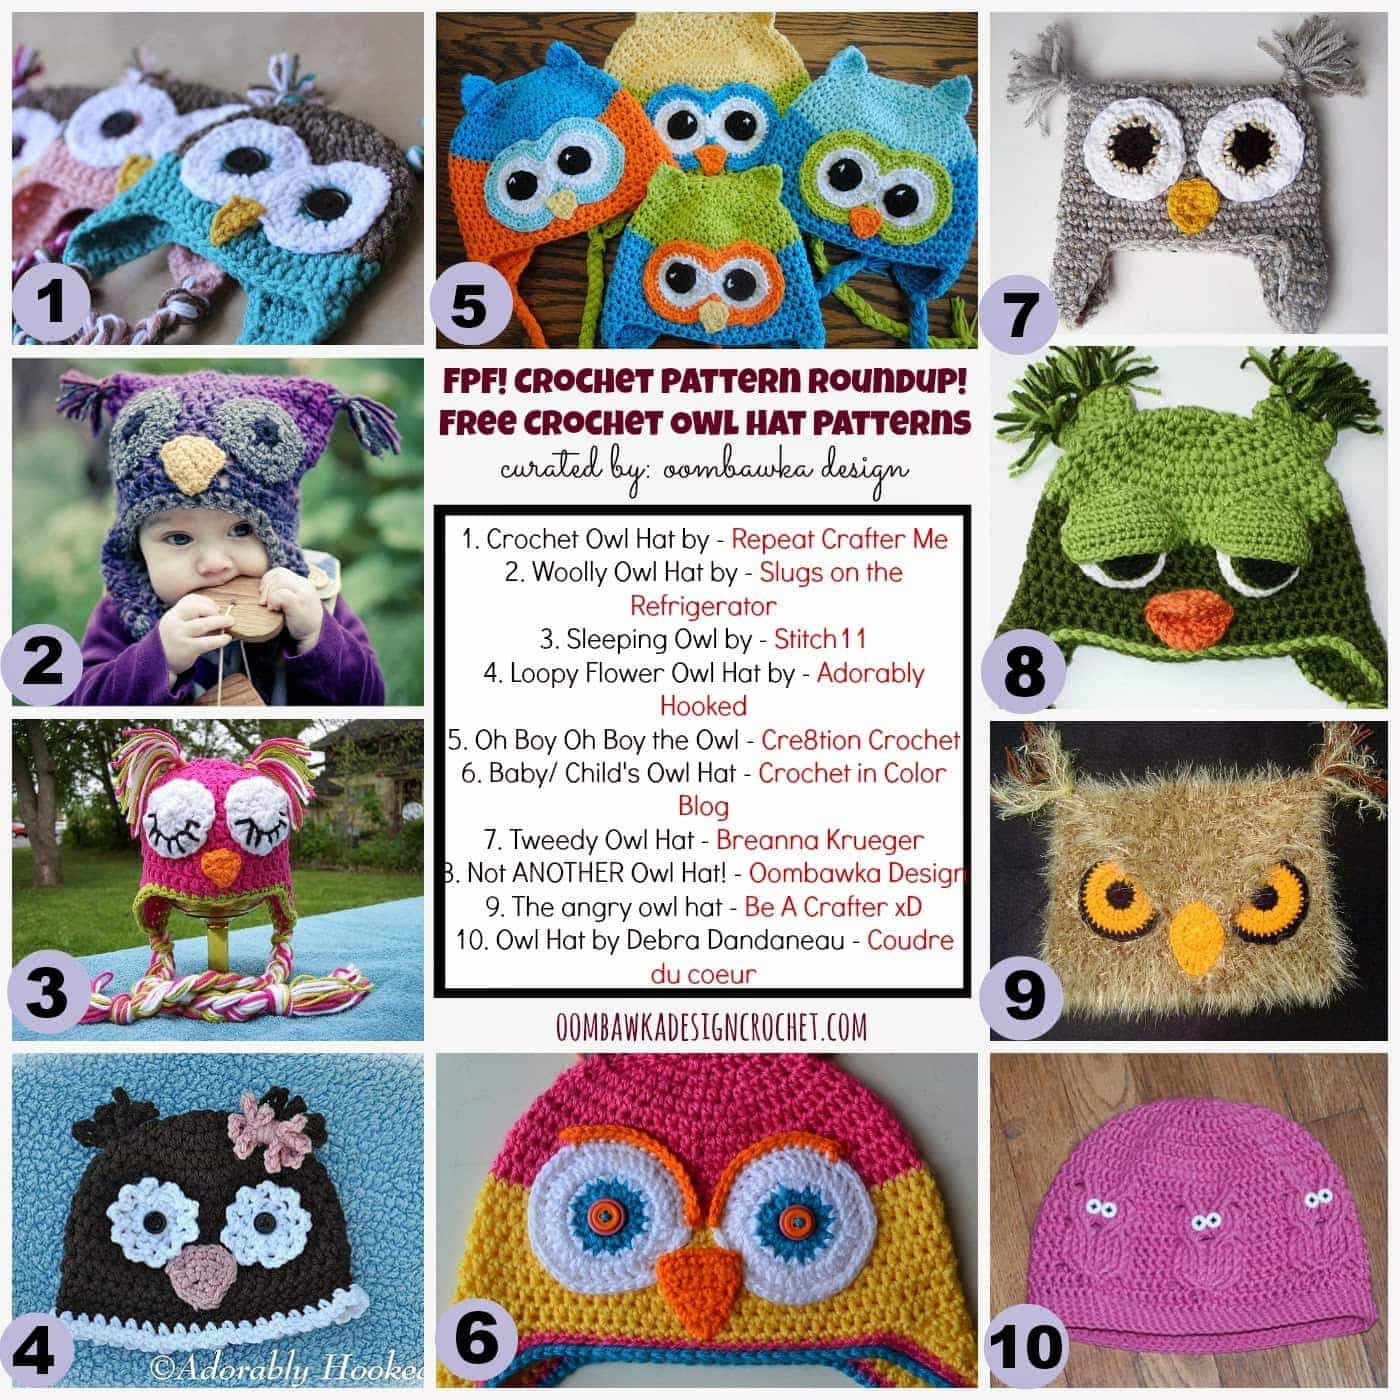 Crochet Owl Hat Patterns Round Up